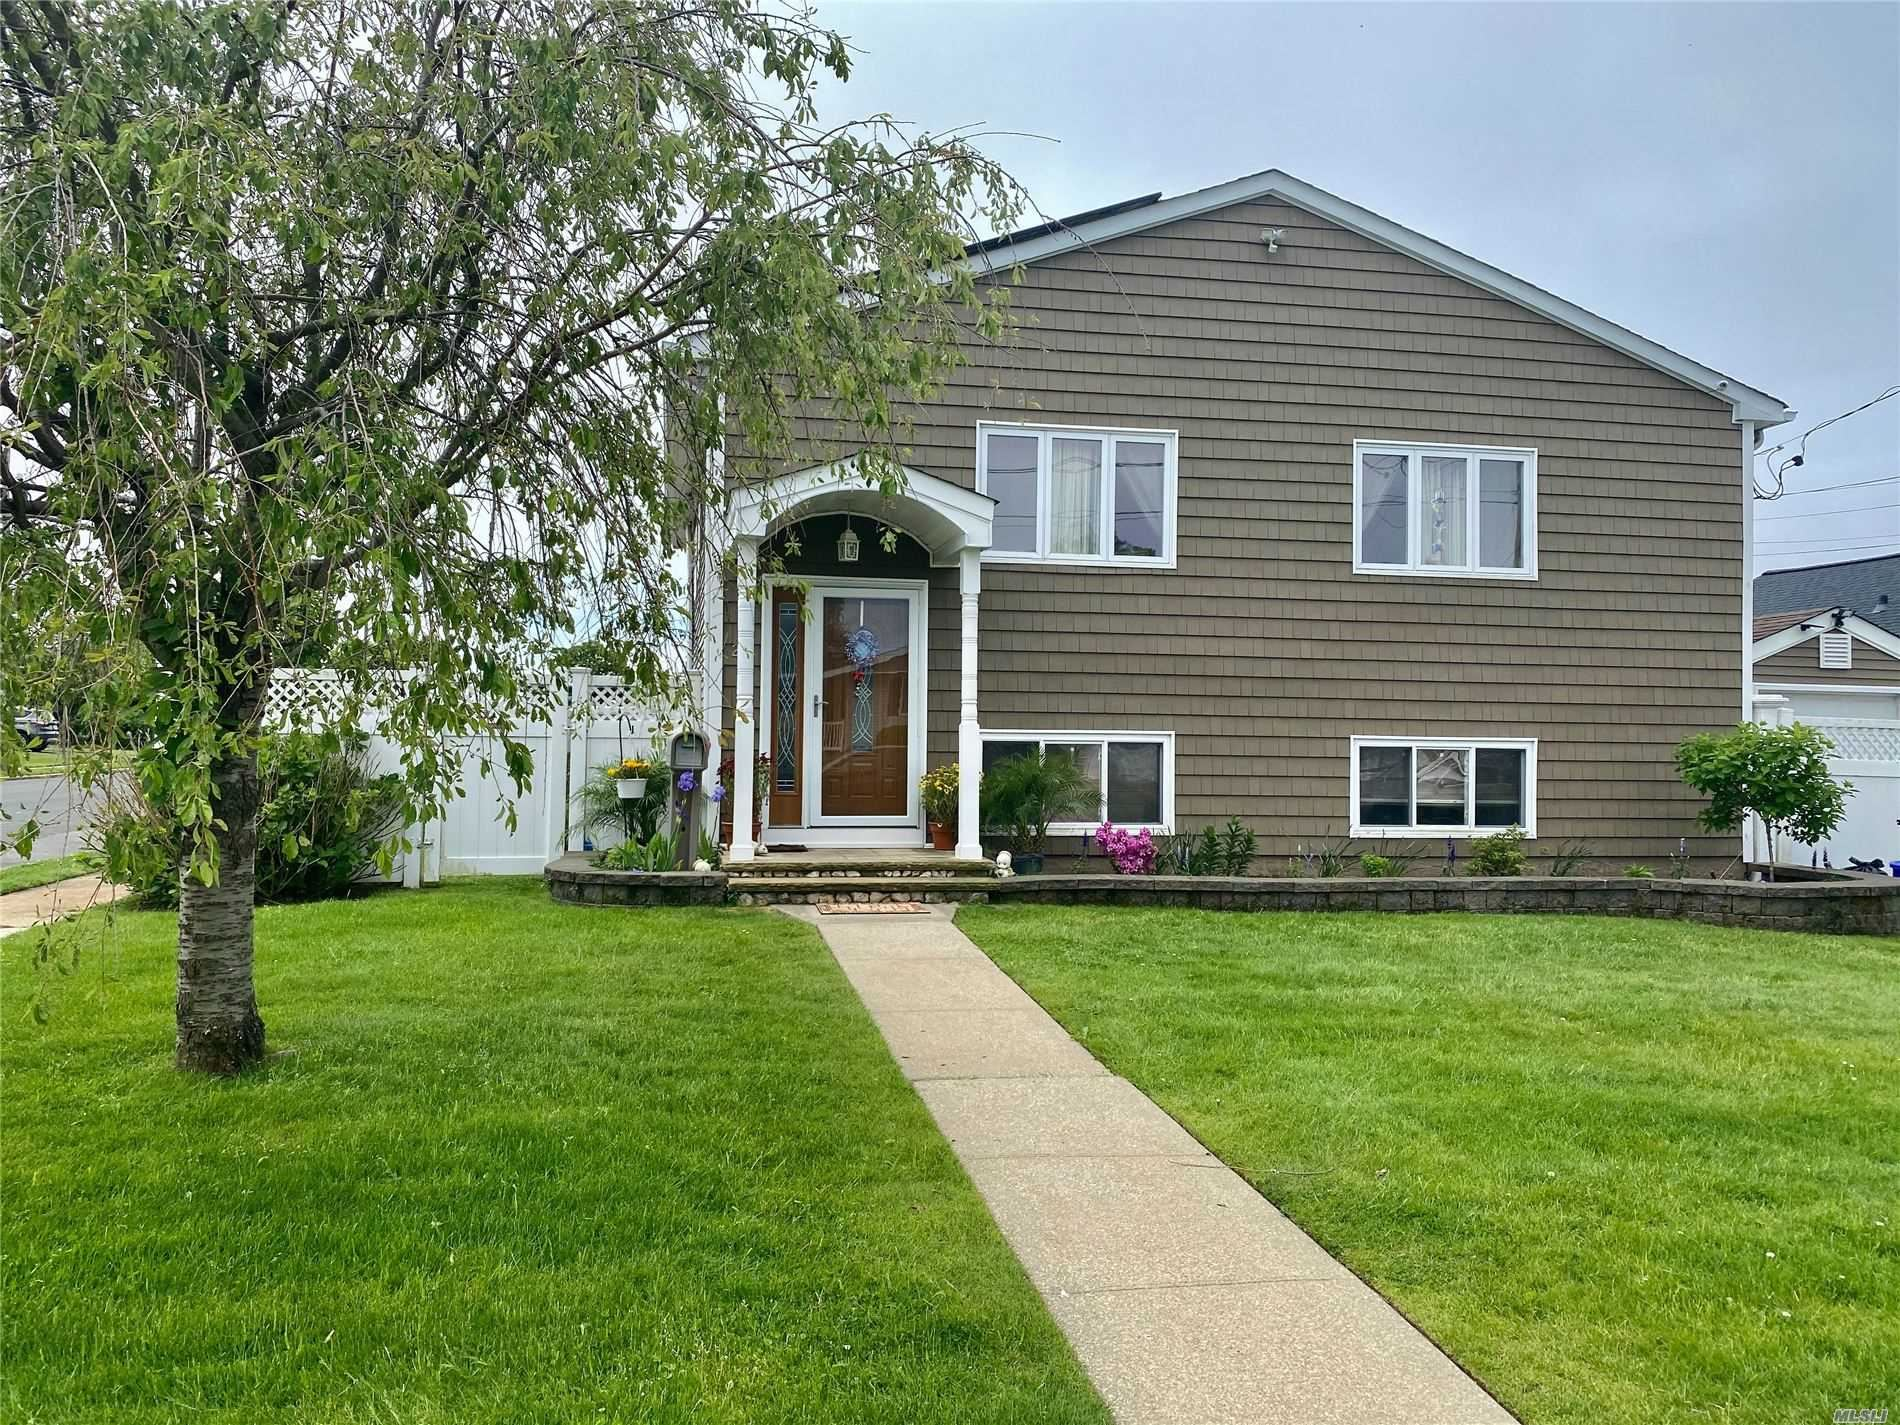 24 India Pl, Amity Harbor, NY 11701 - MLS#: 3217045